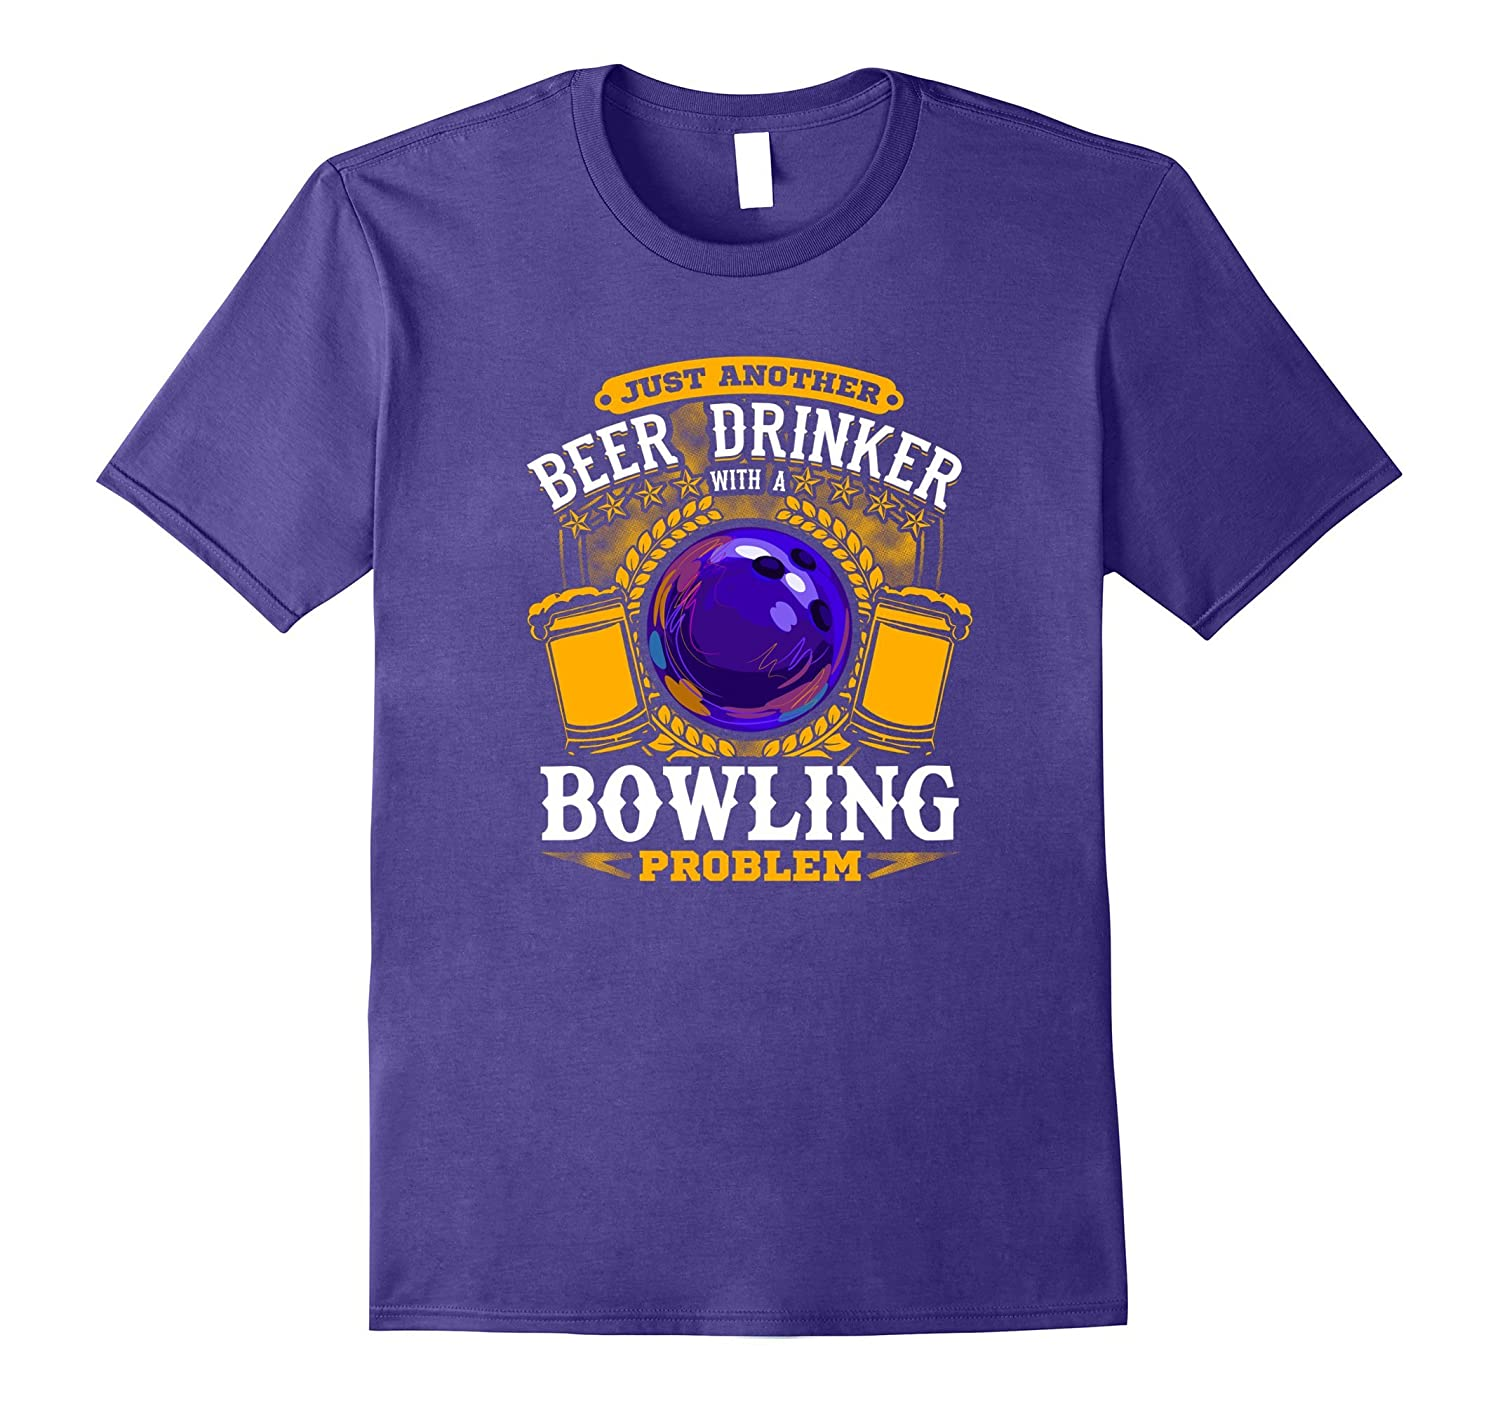 Beer Drinker with Bowling Problem Funny Bowler T-Shirt-Vaci